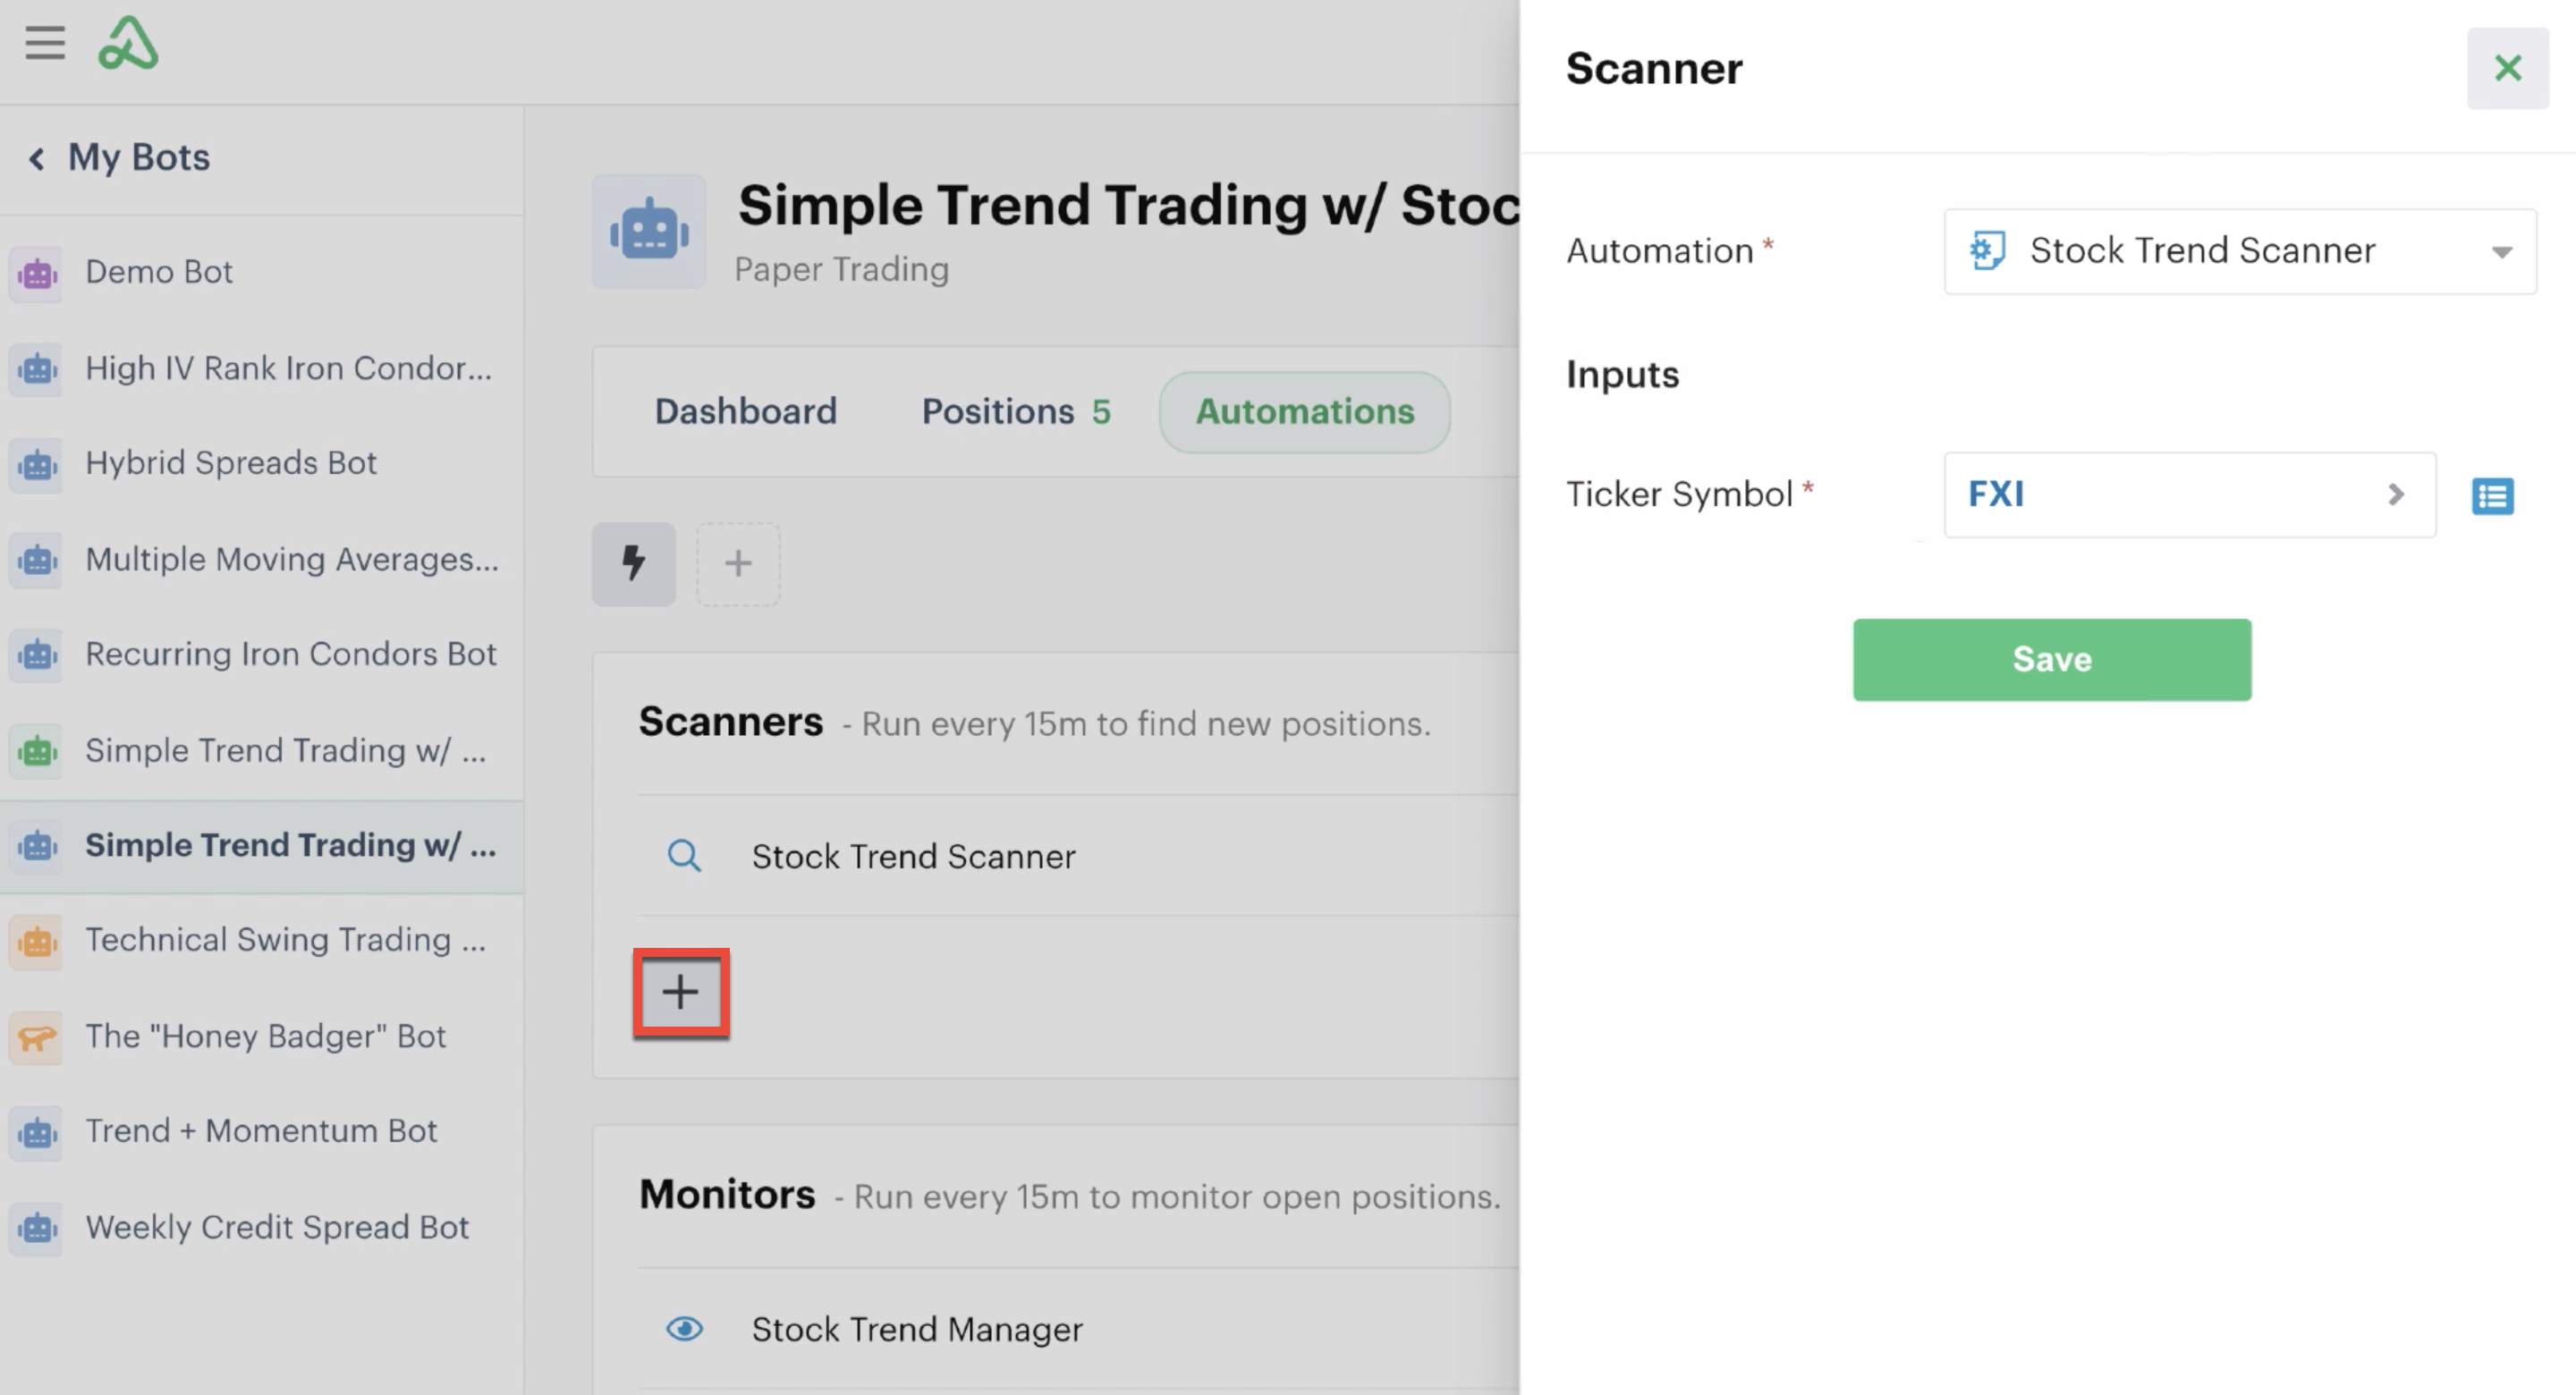 Adding a scanner automation with same custom input, different ticker symbol